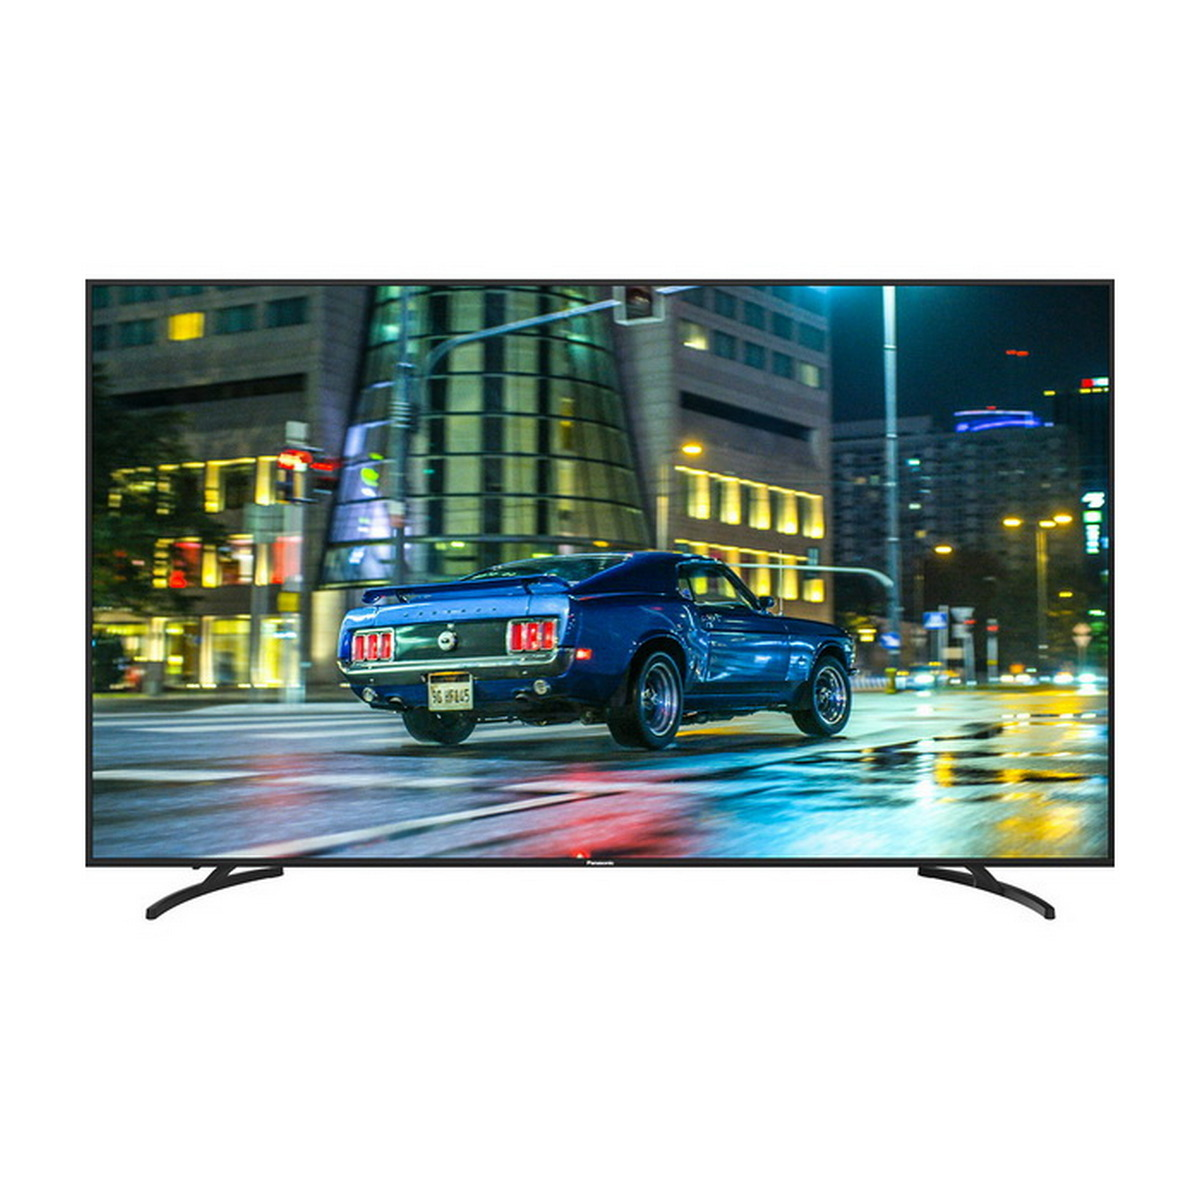 "Panasonic TV UHD LED (75"", Android) TH-75HX600T"